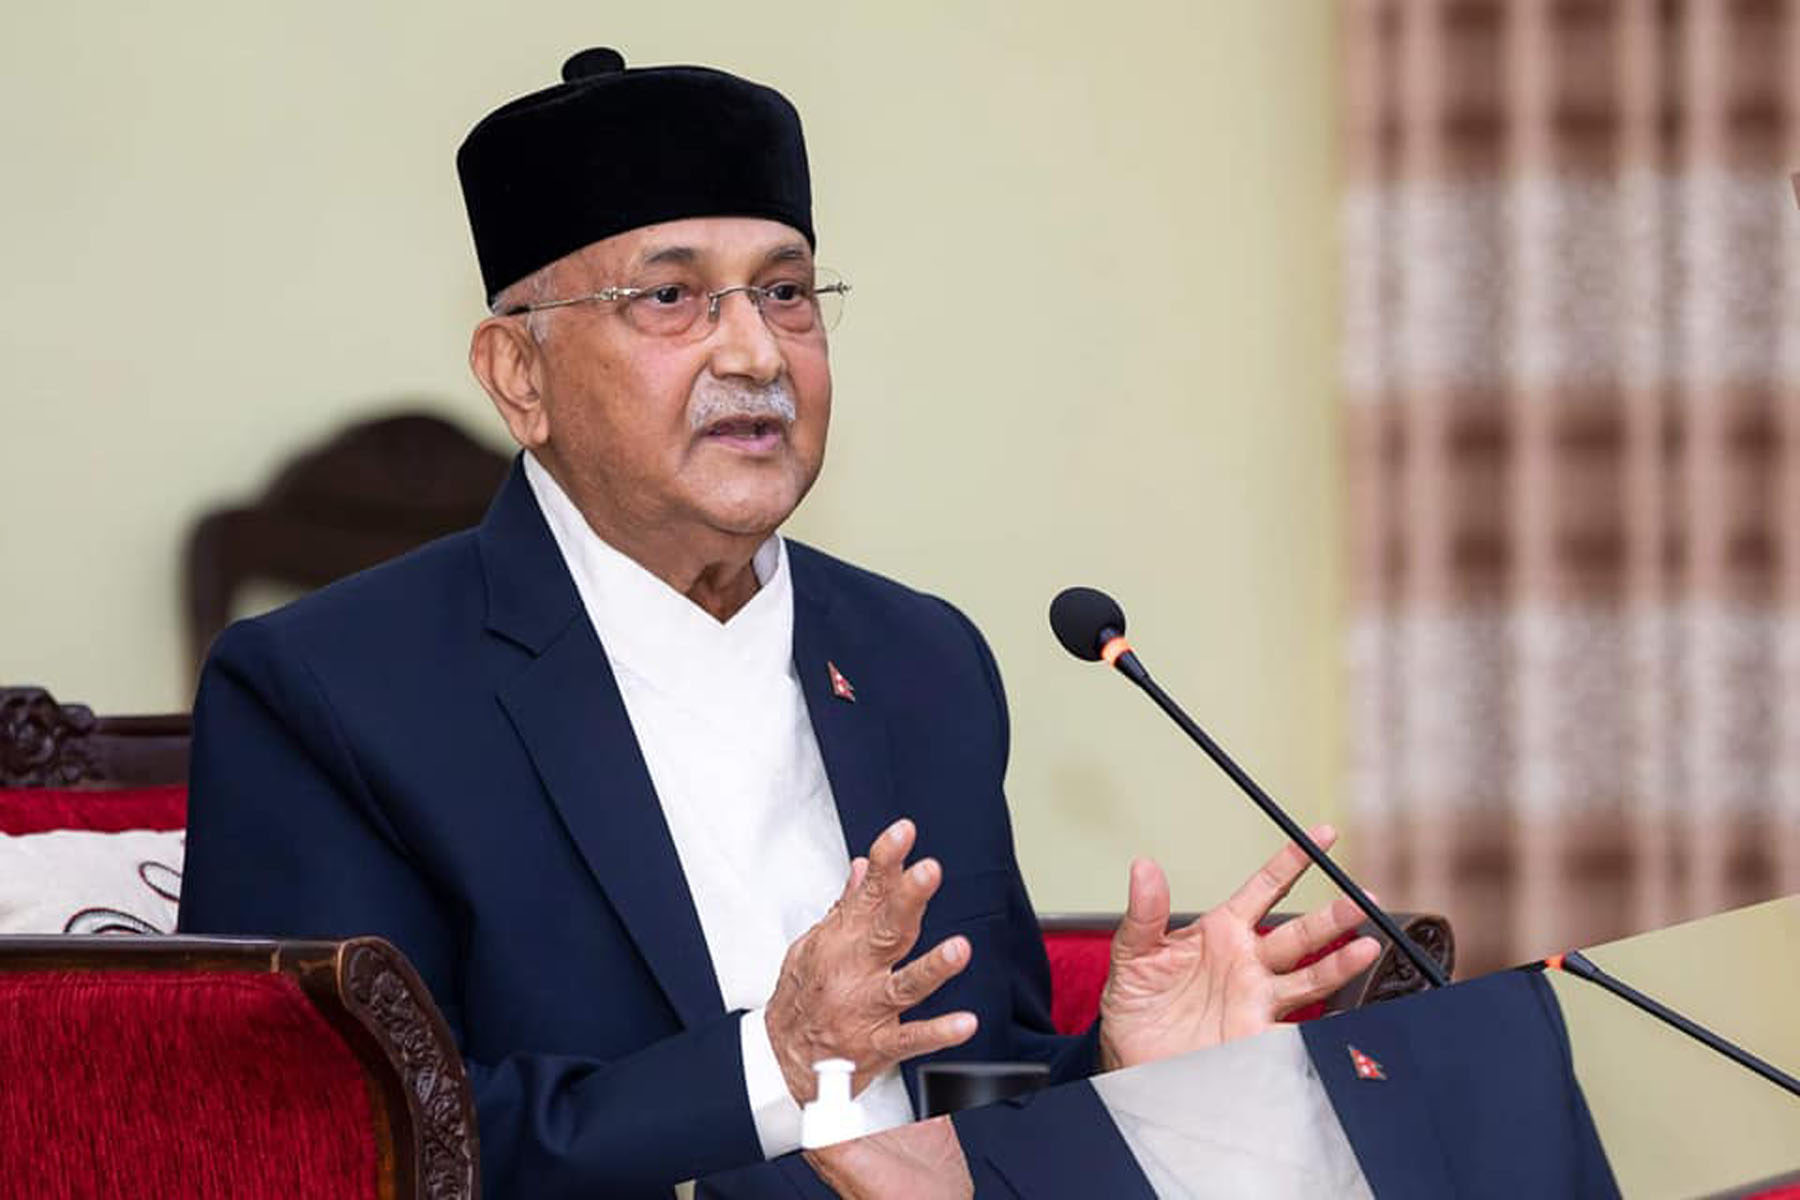 PM Oli as seen at the event in Baluwatar on Monday. Photo: RSS